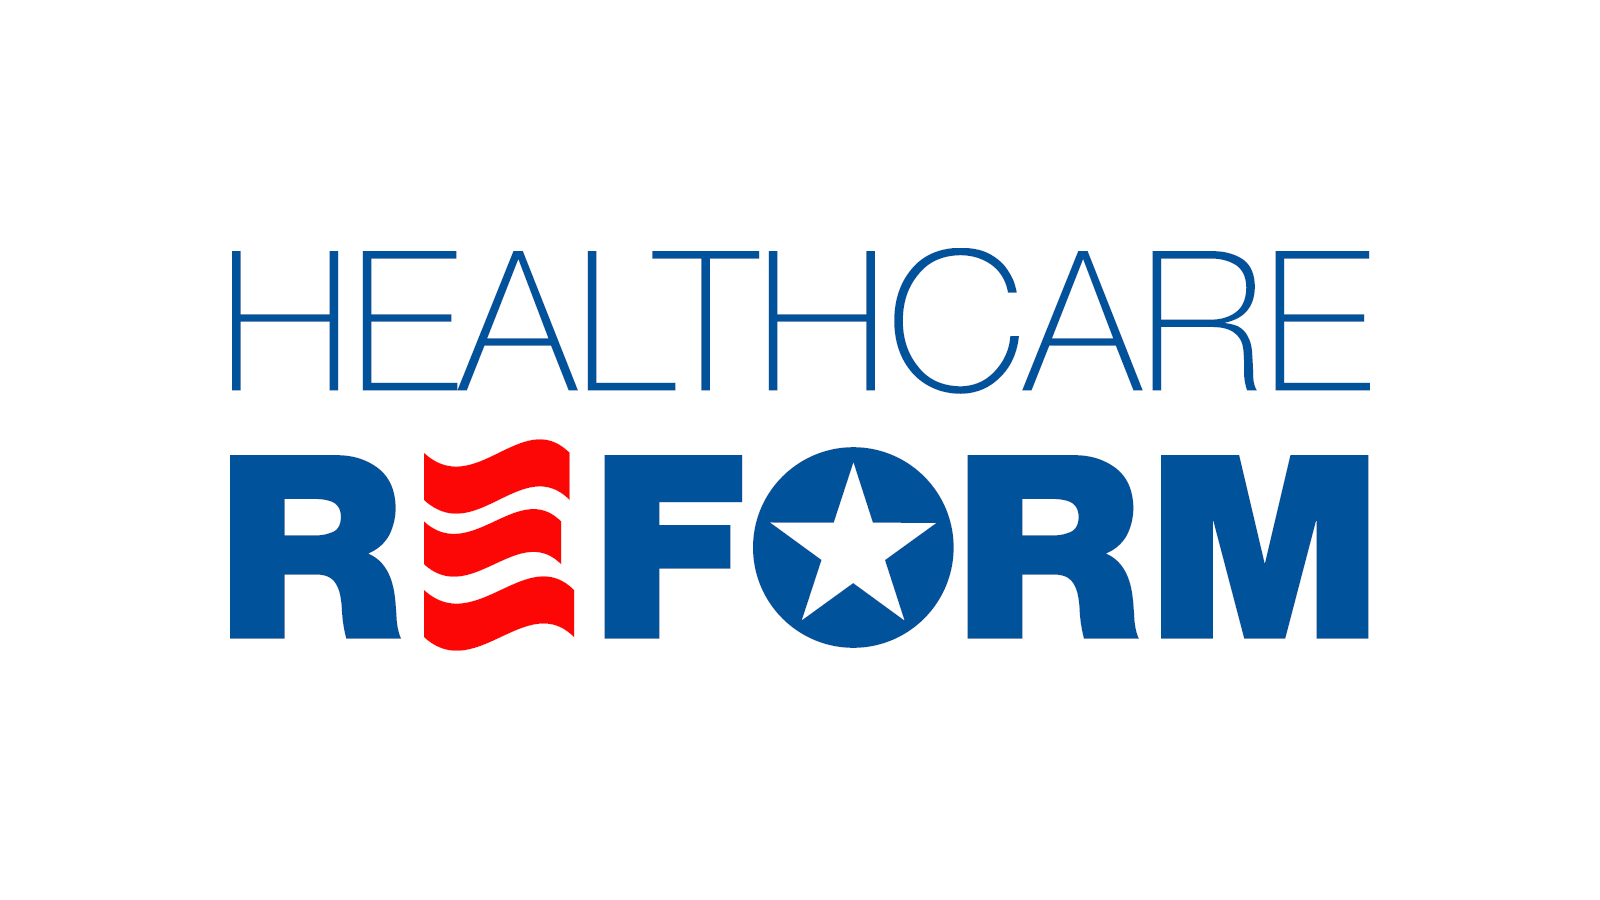 Healthcare Reform Logo Design